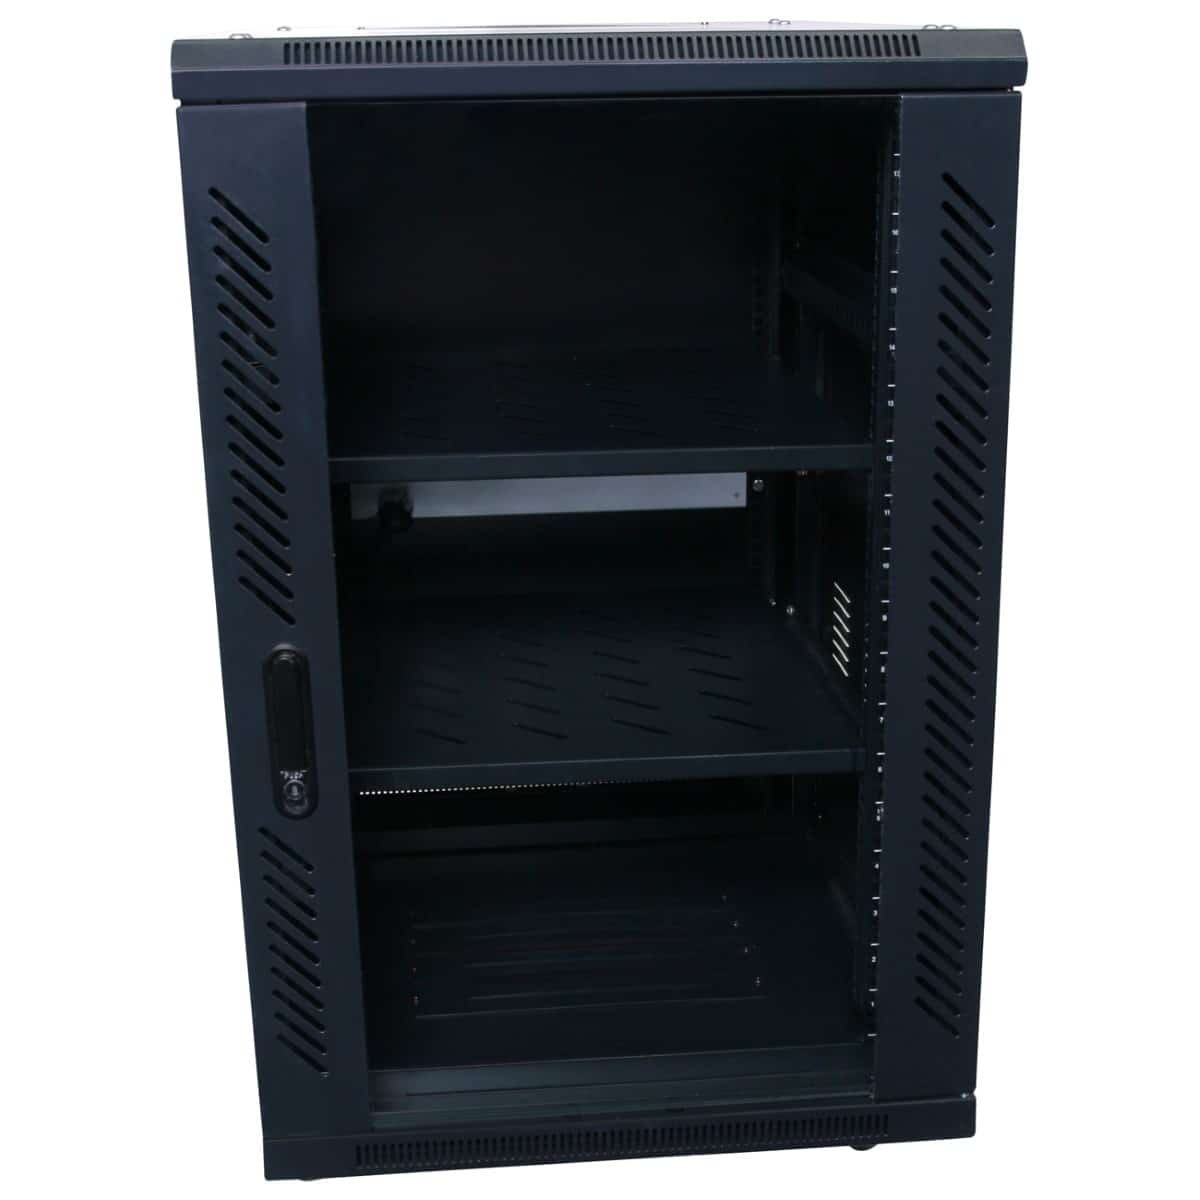 18RU 800mm Deep X 600mm Wide Rack Cabinet